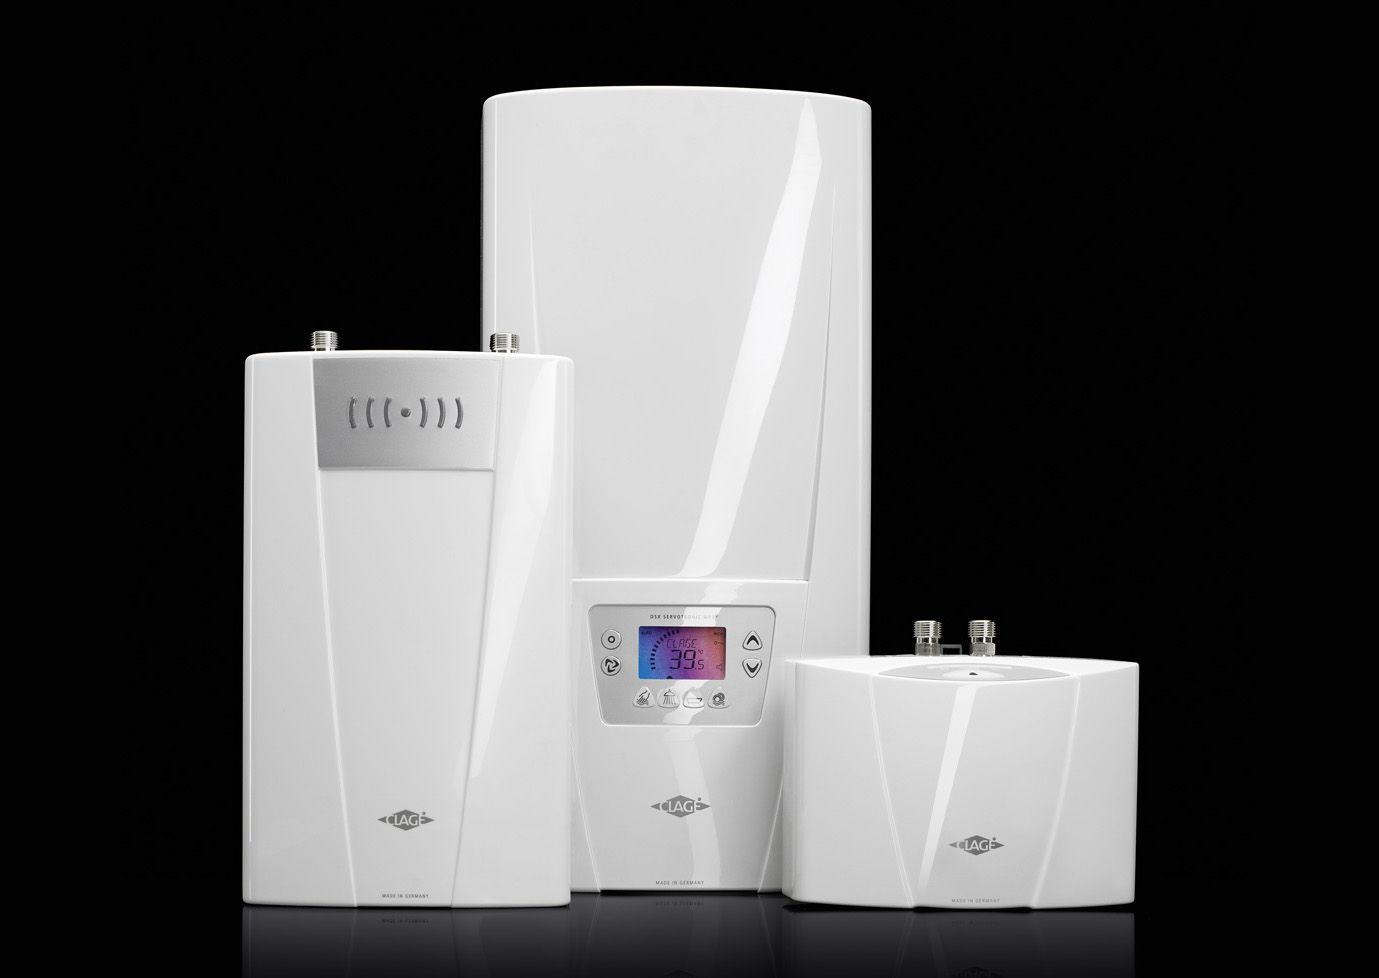 Pin op Durchlauferhitzer · Instant water heaters